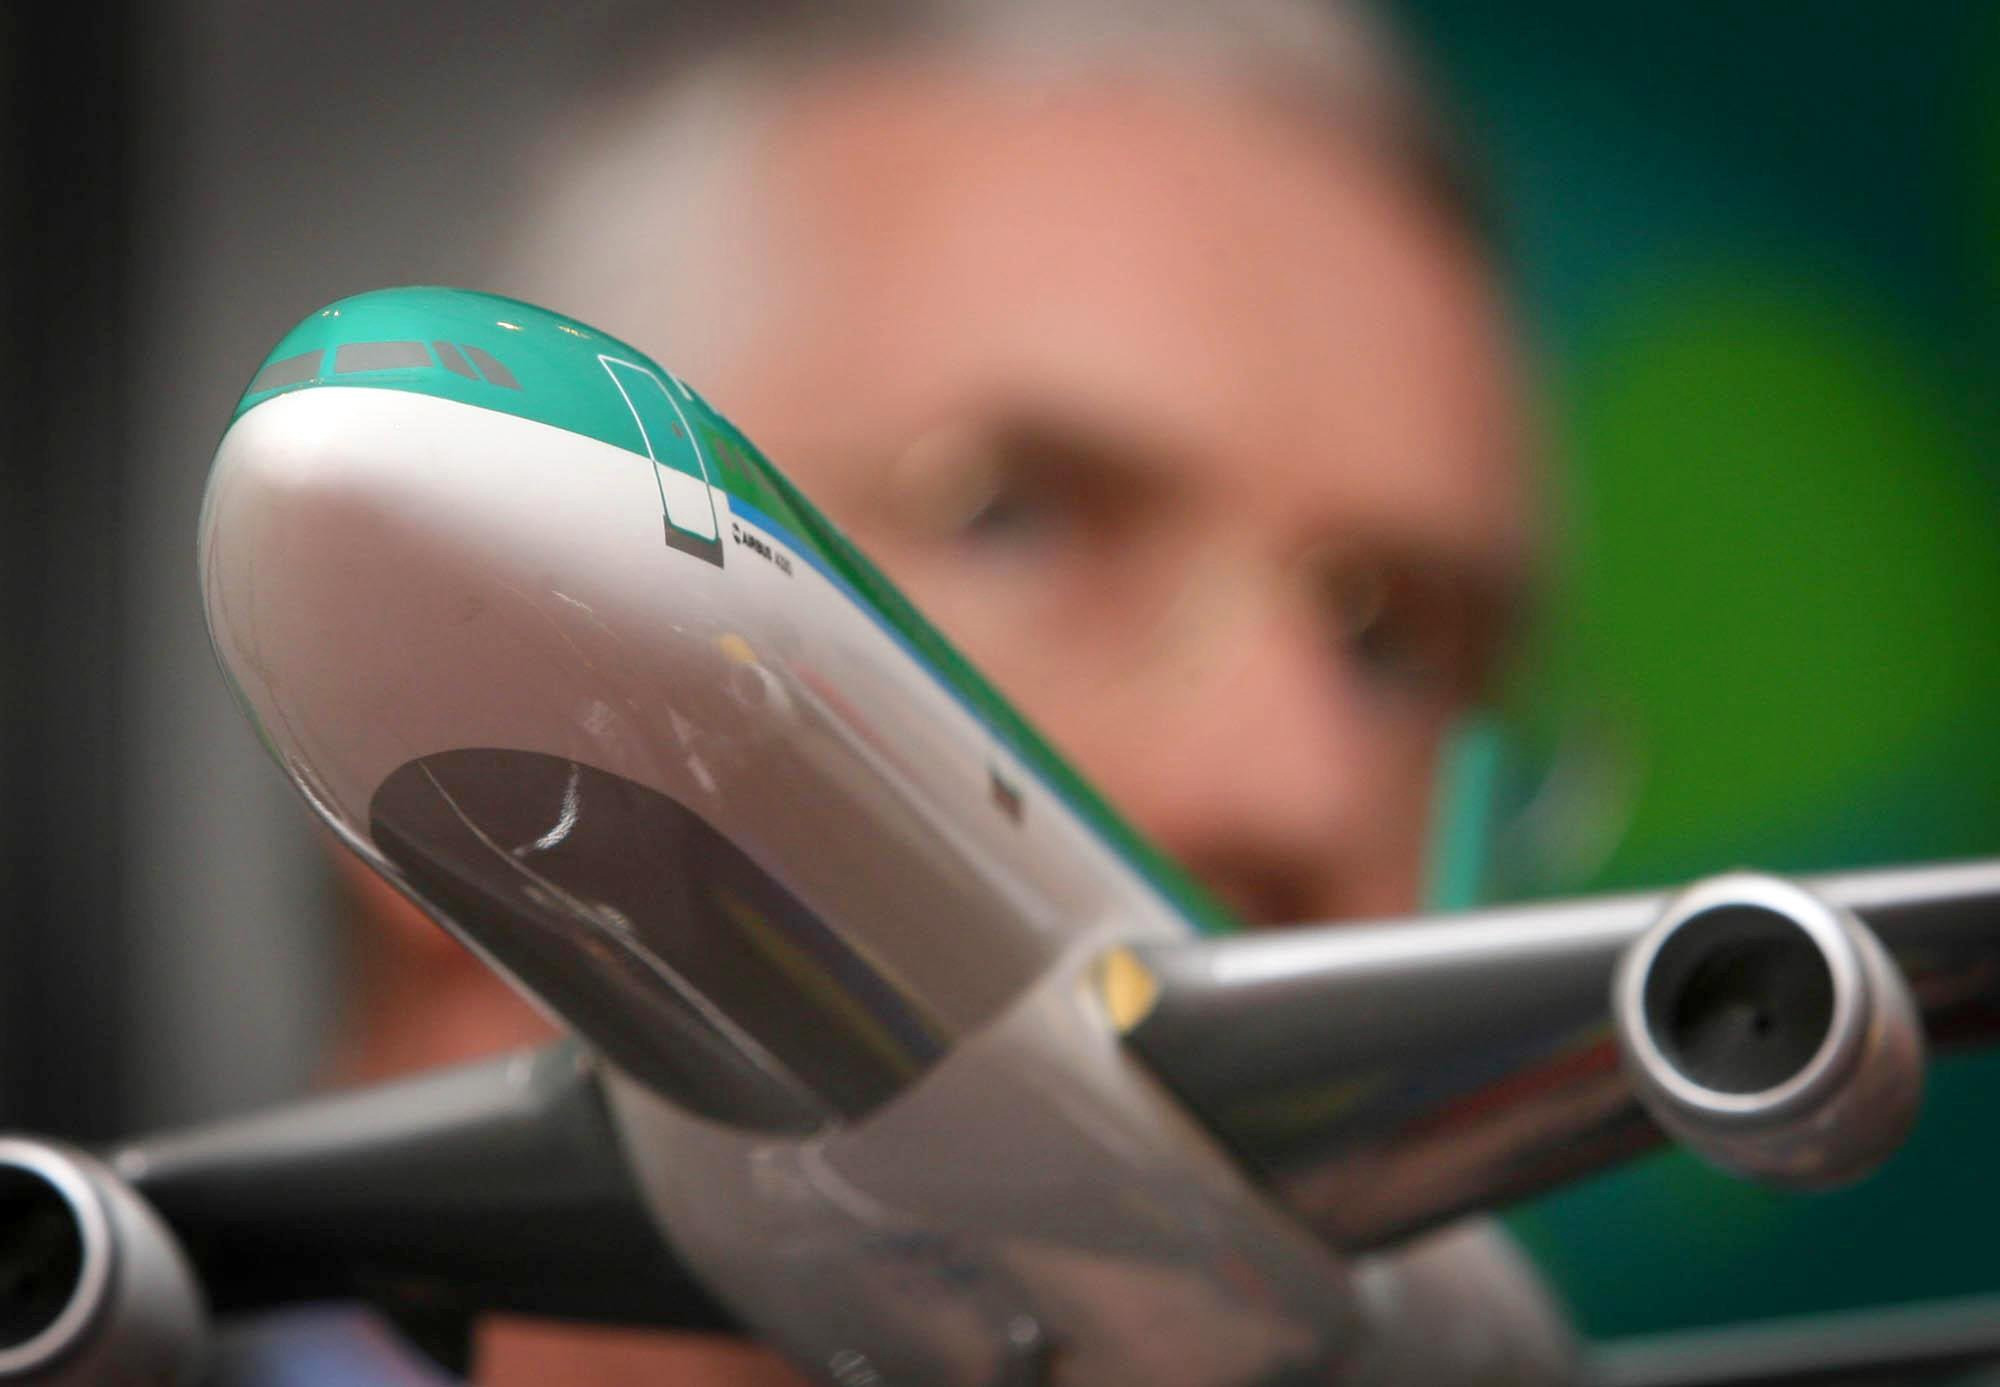 Then-Aer Lingus CEO Dermott Manion speaking at a press conference in Dublin in 2006.